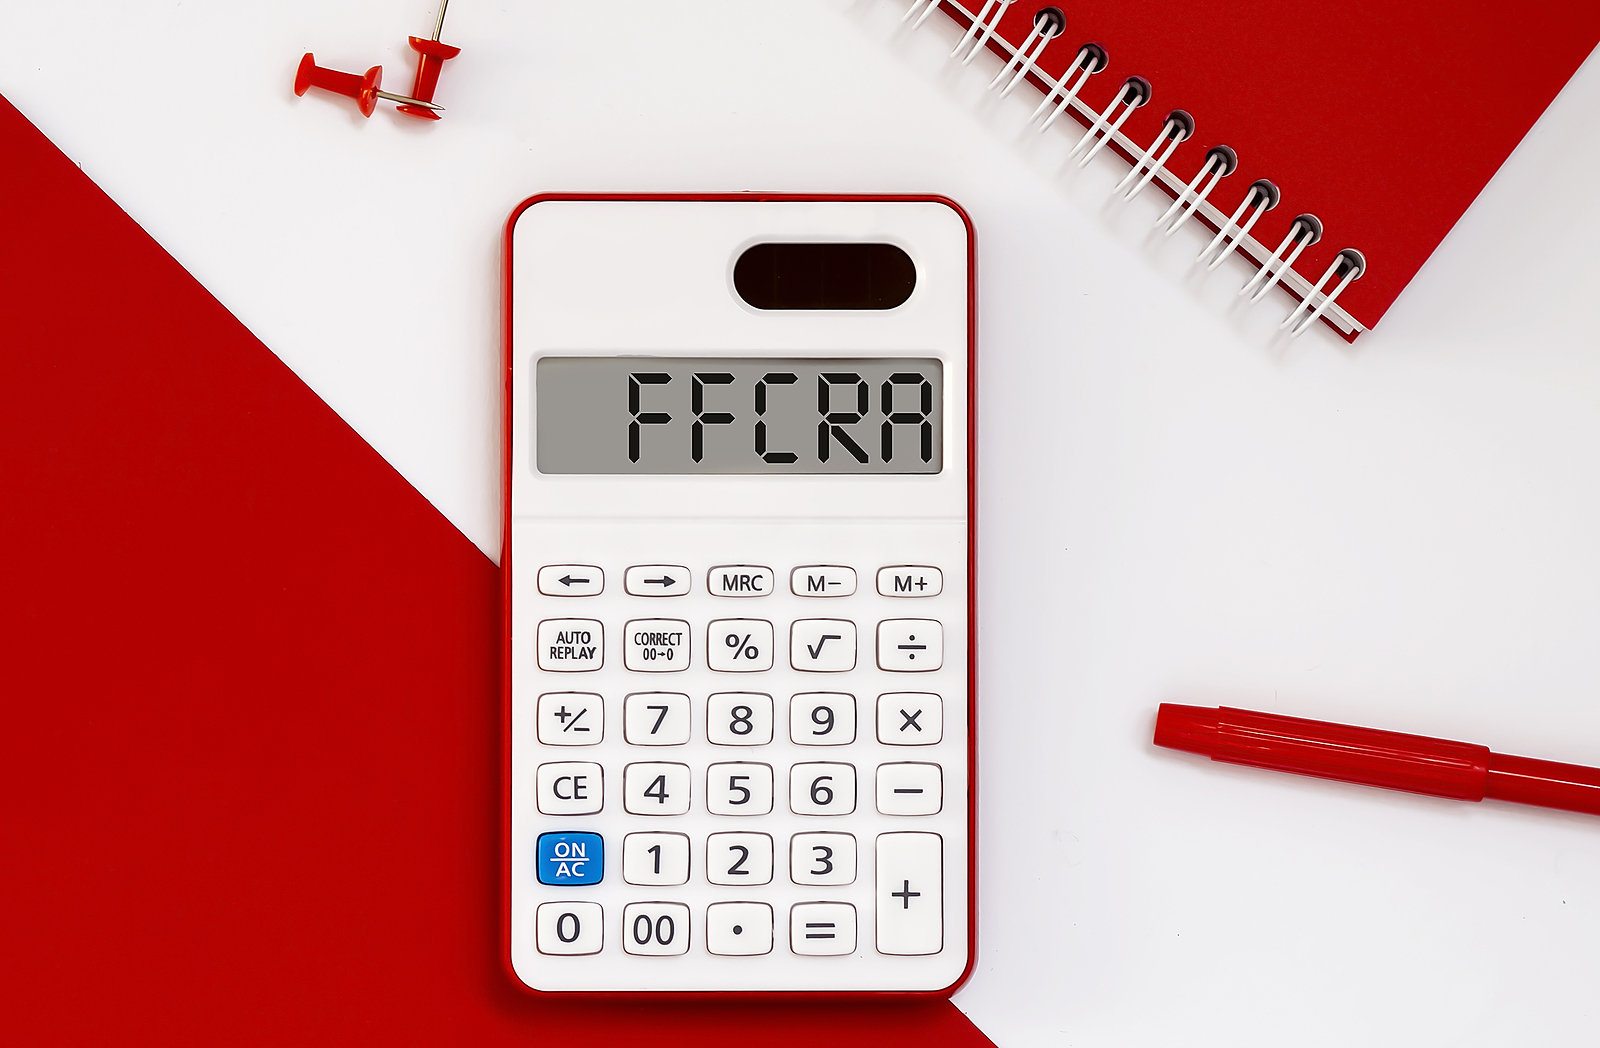 updated guidance for businesses, FFCRA 2021